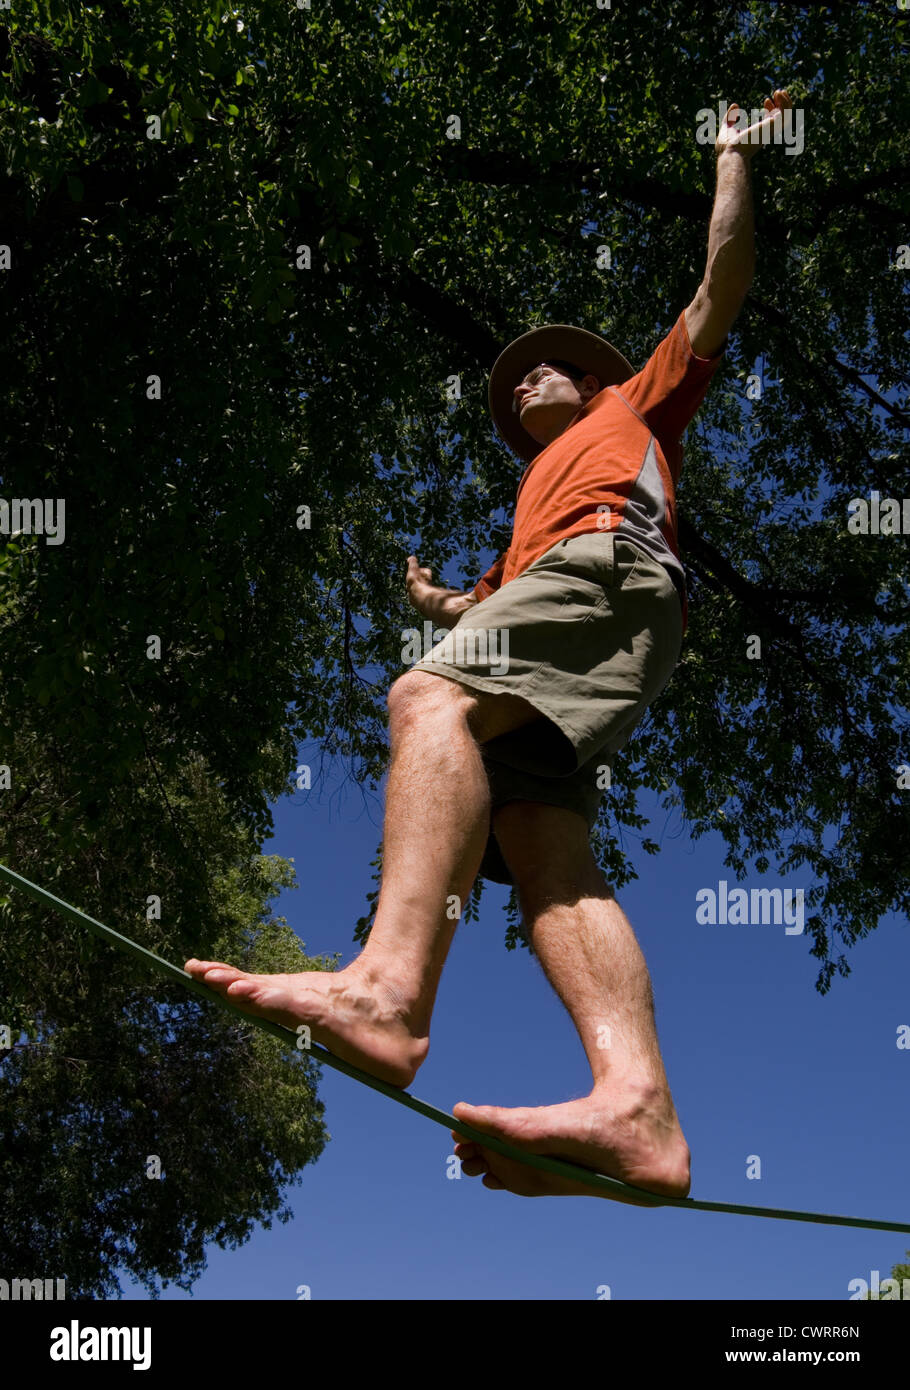 man balancing on a slackline pictured from below - Stock Image